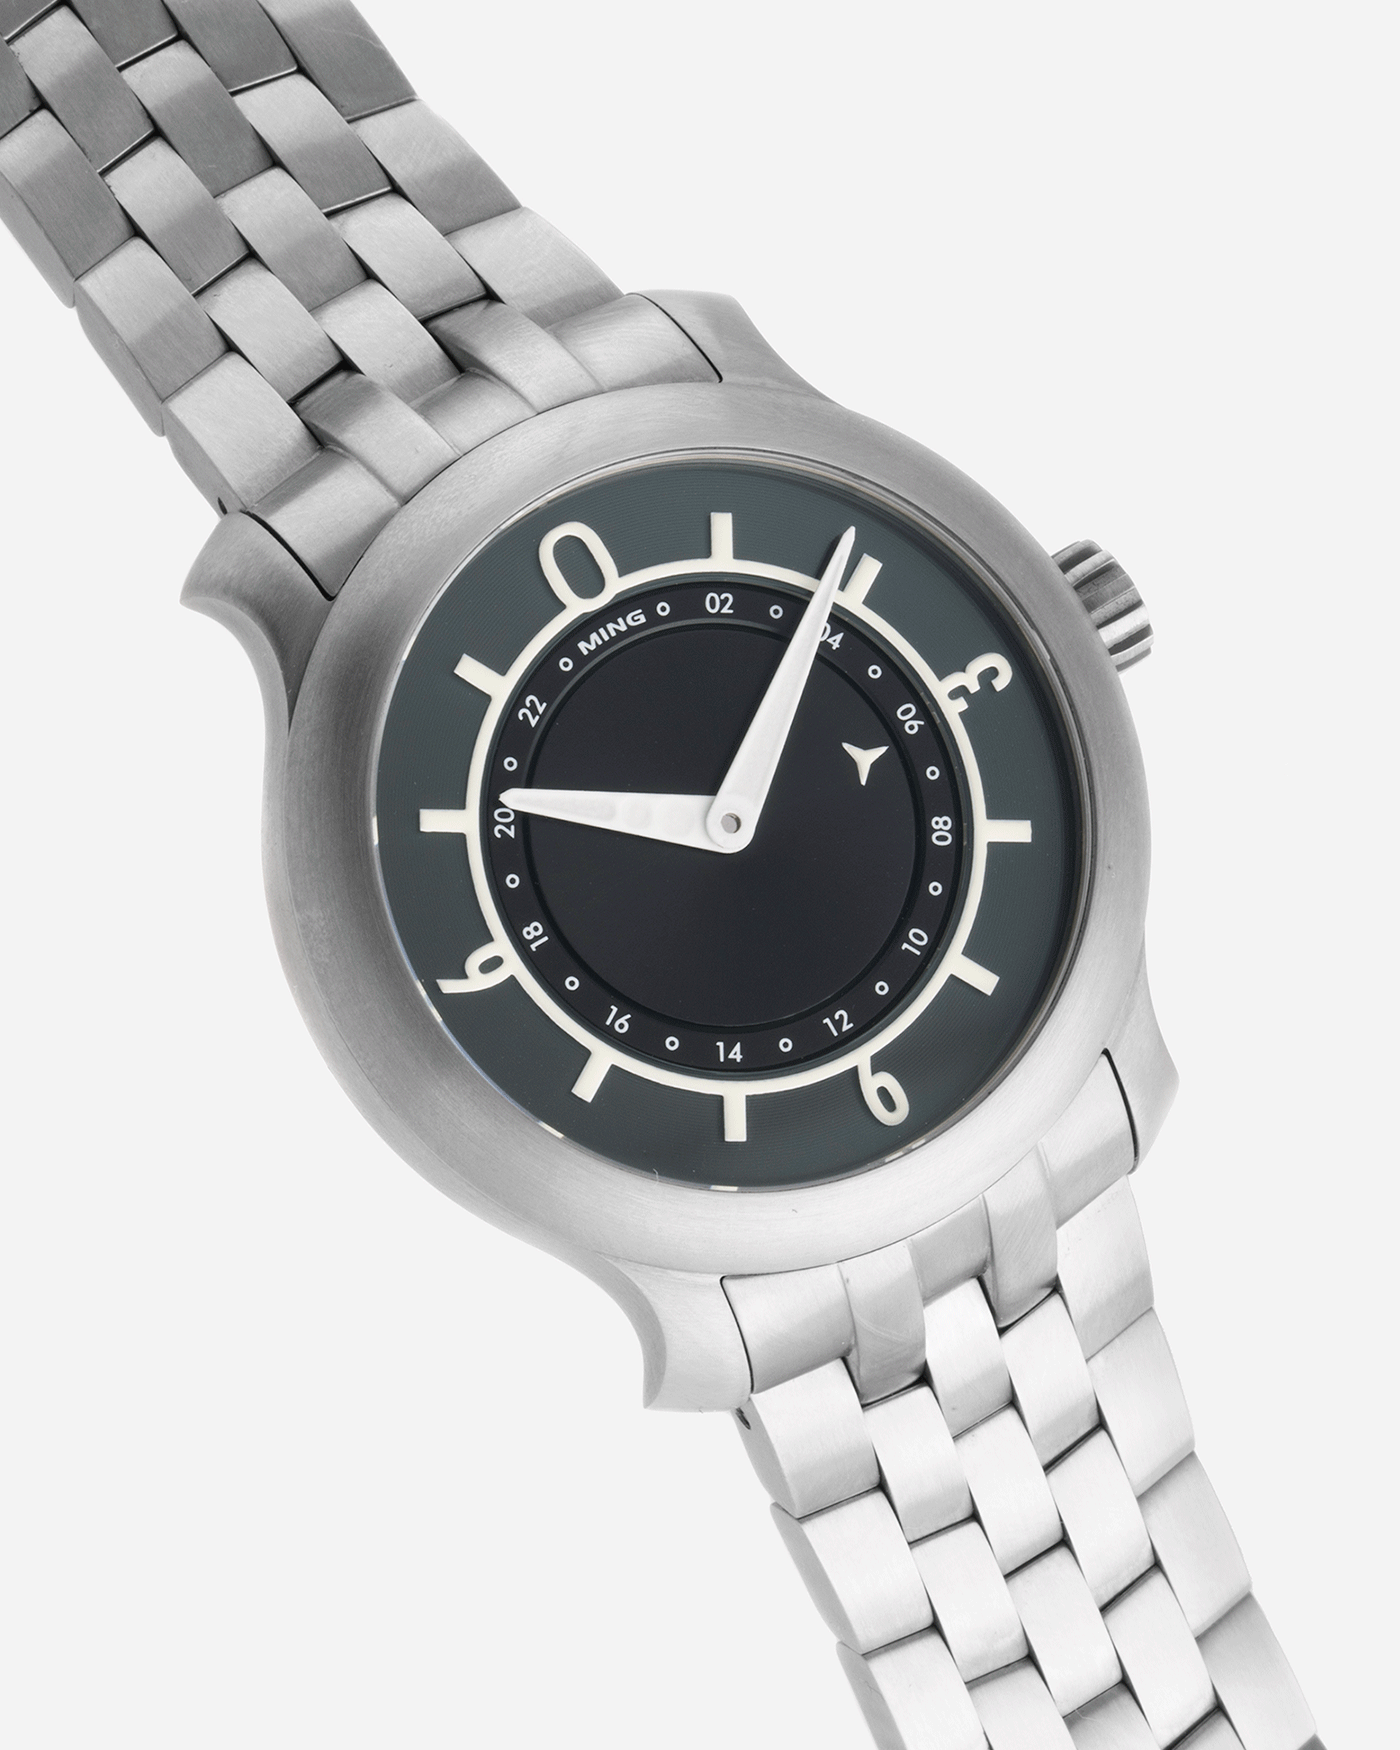 MING Watches 17.03 GMT Black Watch Ming Thein | S.Song Vintage Timepieces